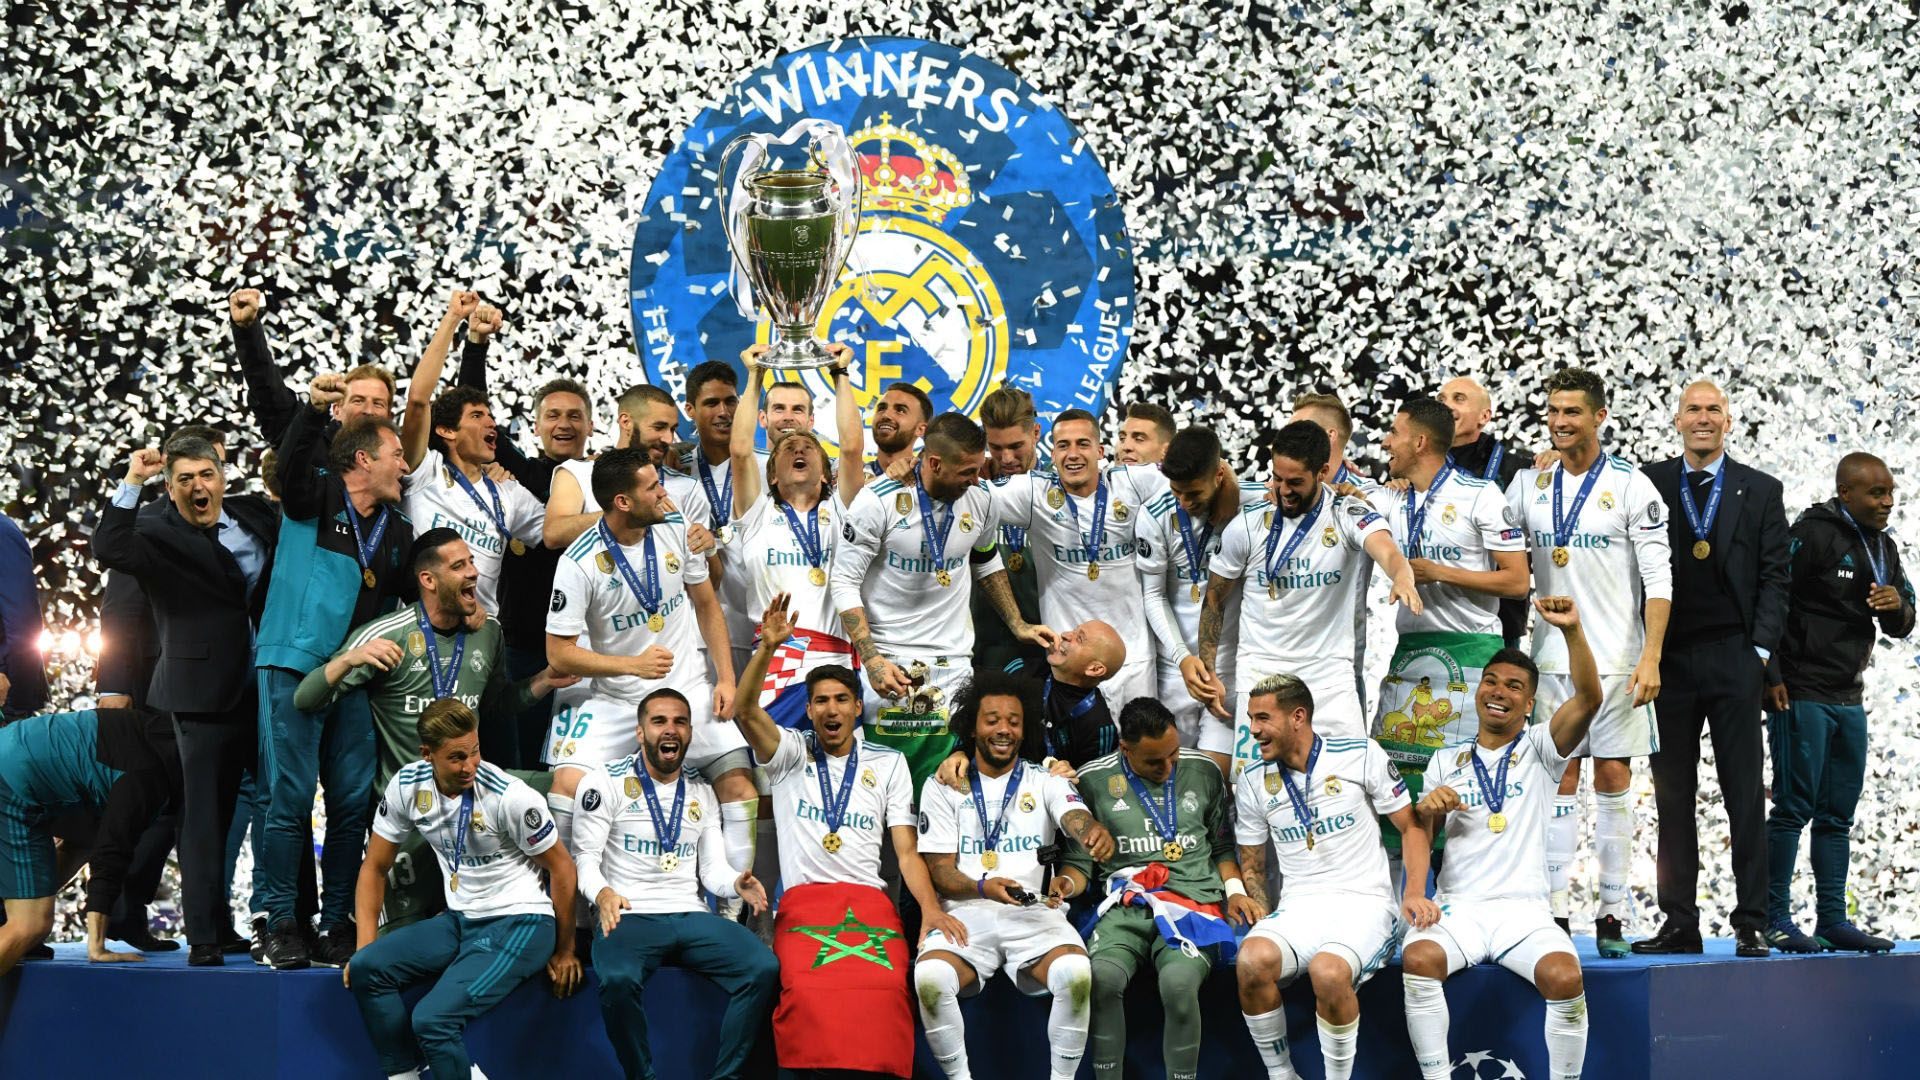 Real Madrid Wallpaper Hd 2019 Hd Football In 2020 Real Madrid Wallpapers Real Madrid Champions League Madrid Wallpaper